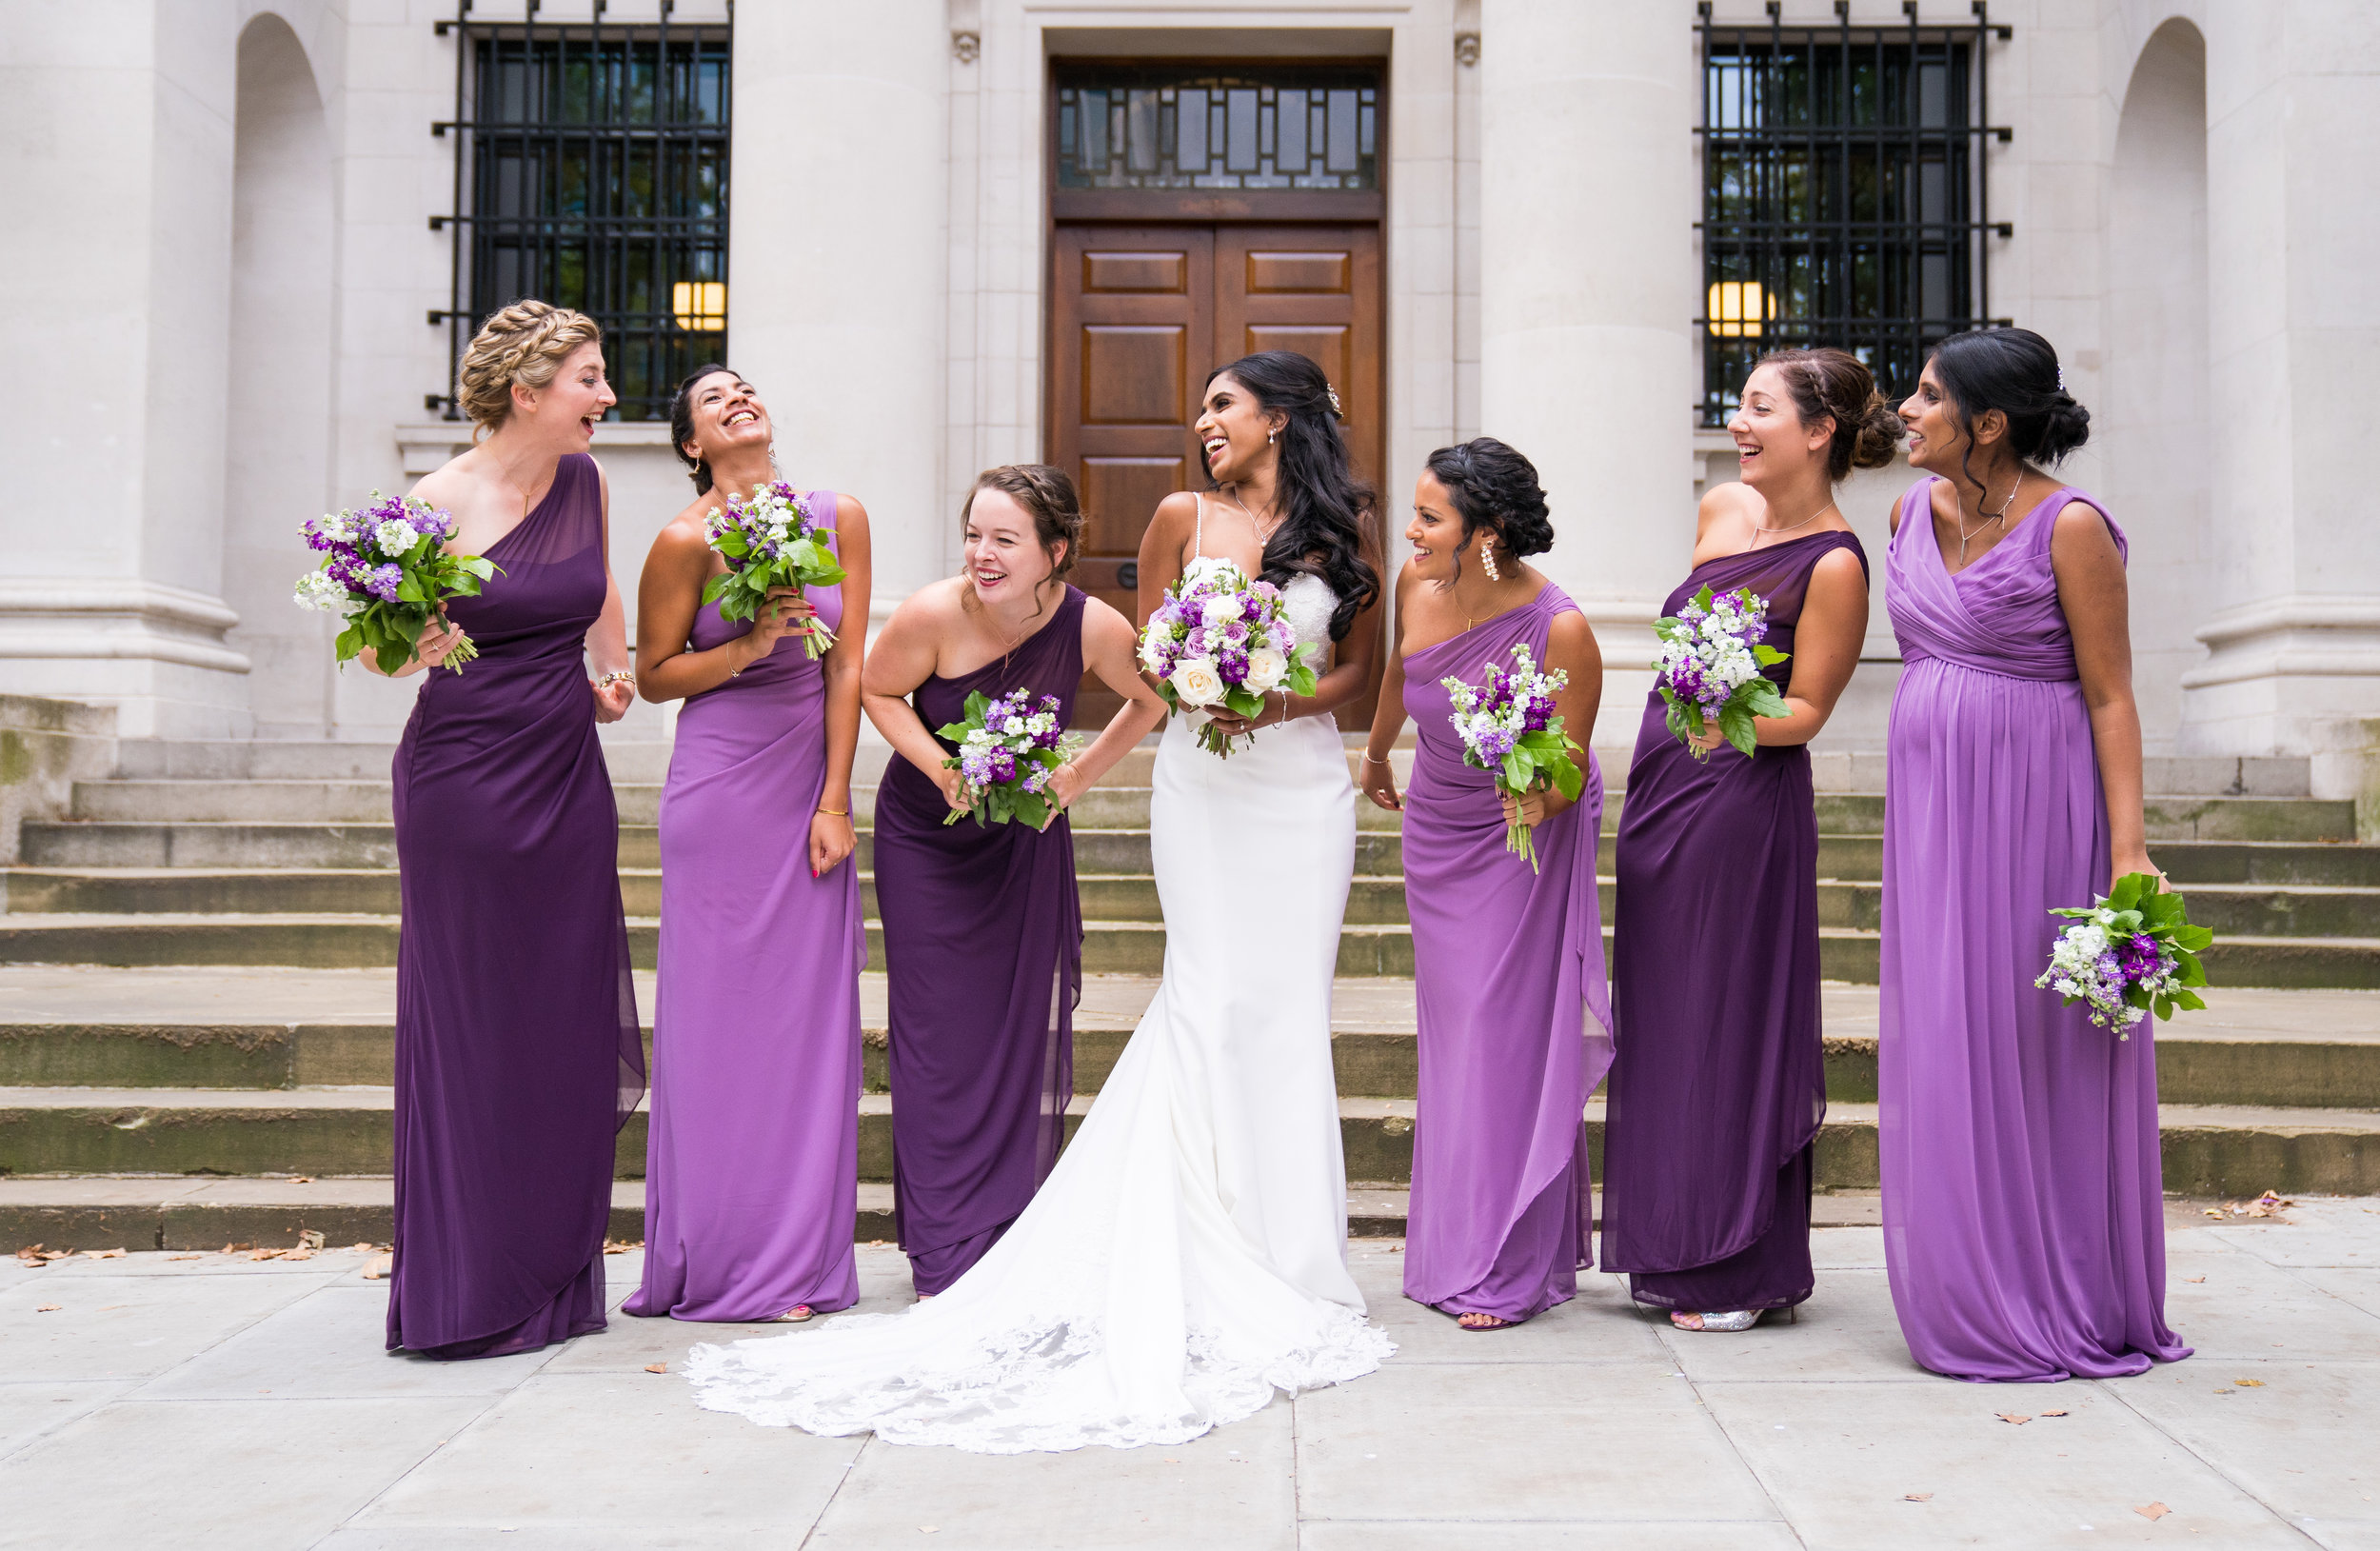 anglo-asian-hindu-civil-wedding-photography-videography-london-portrait-marylebone-old-town-hall-54